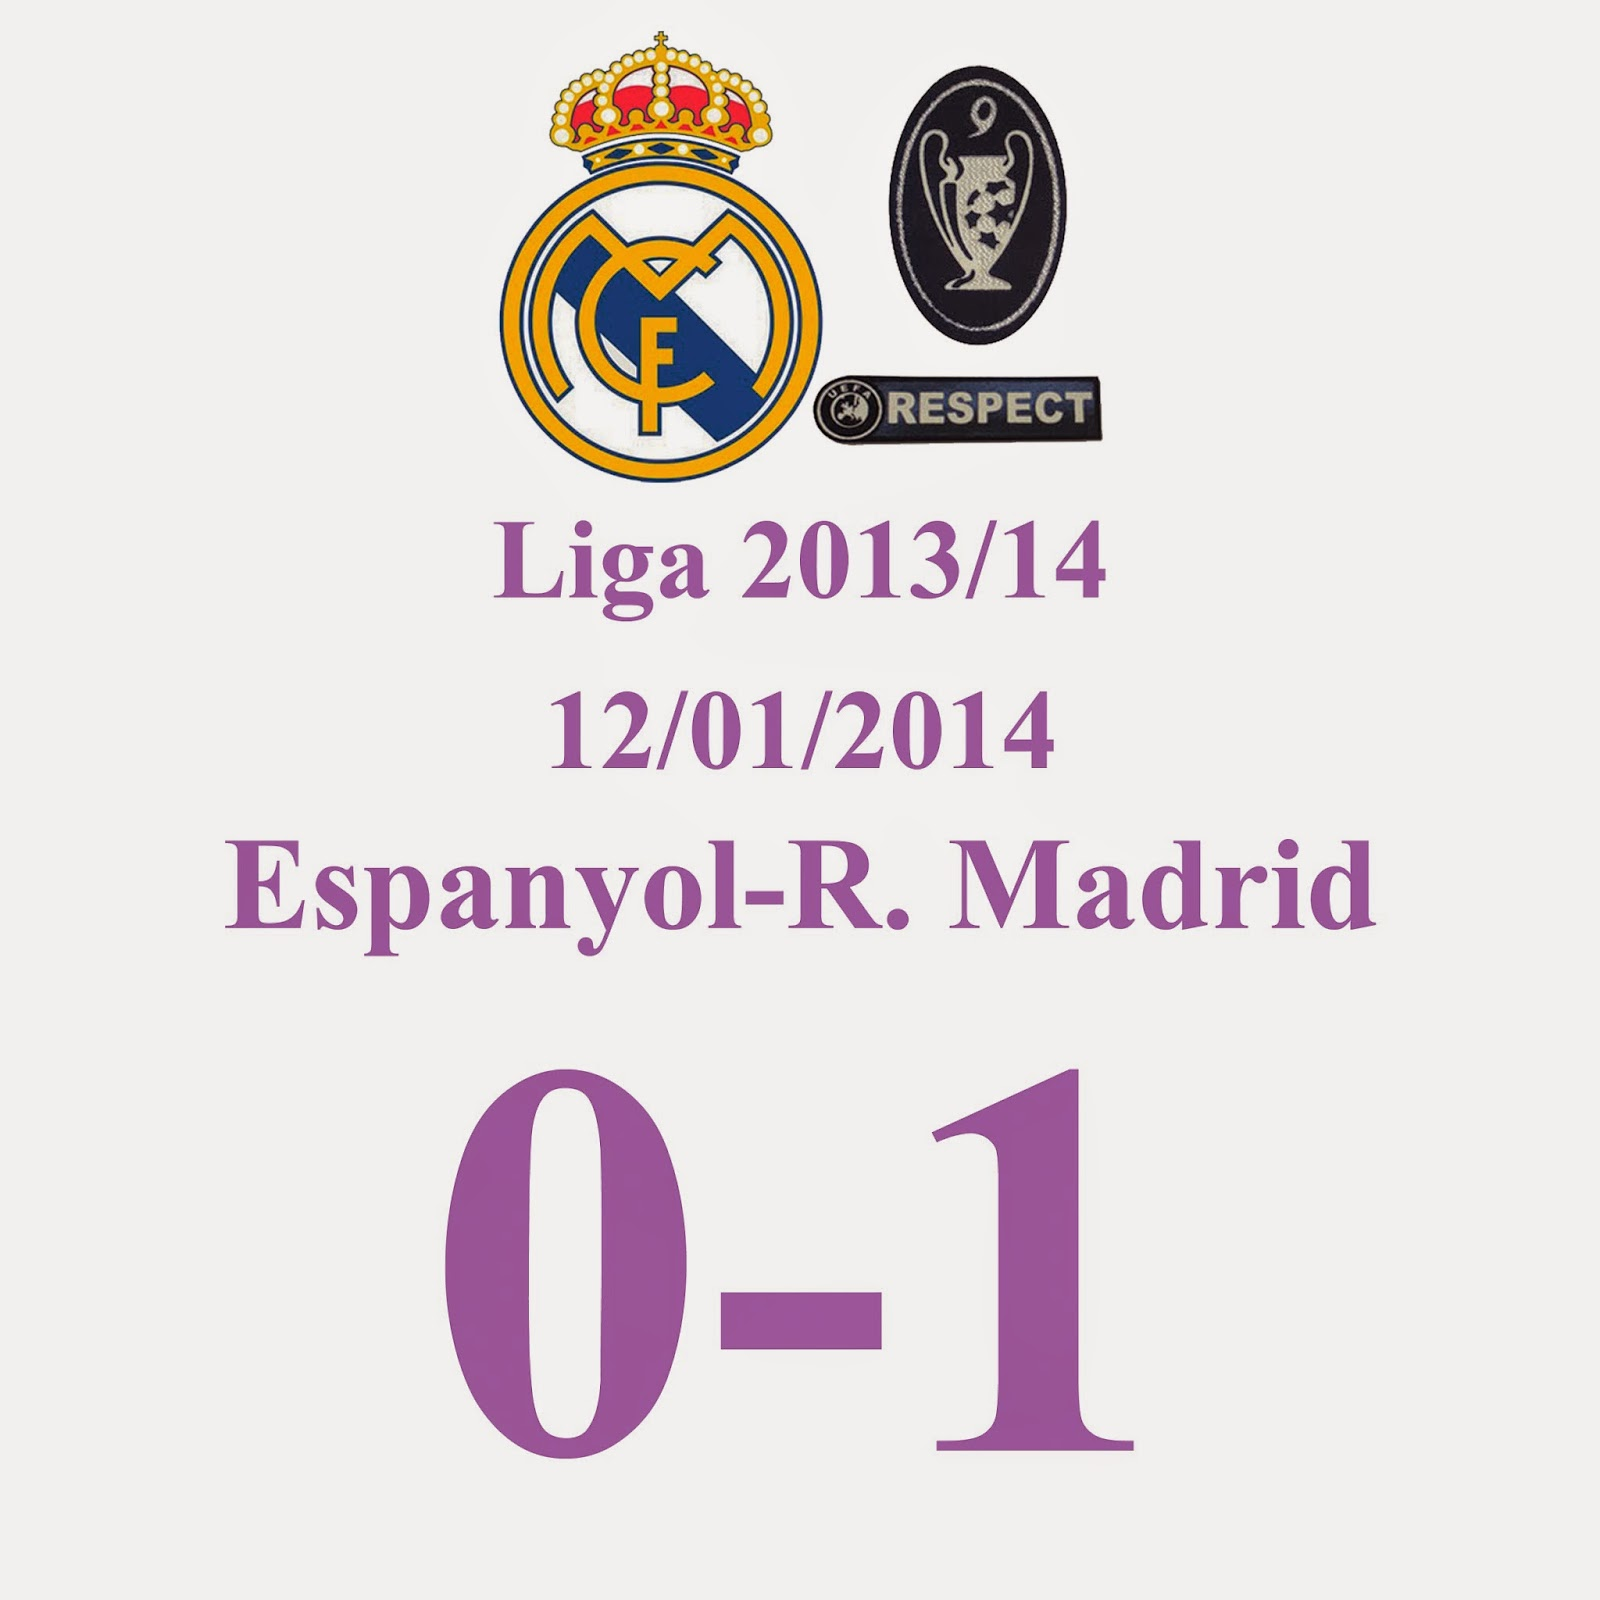 Espanyol 0 - 1 Real Madrid - (Jornada 19) 12/01/2014 - Suma y sigue. Gol de Pepe